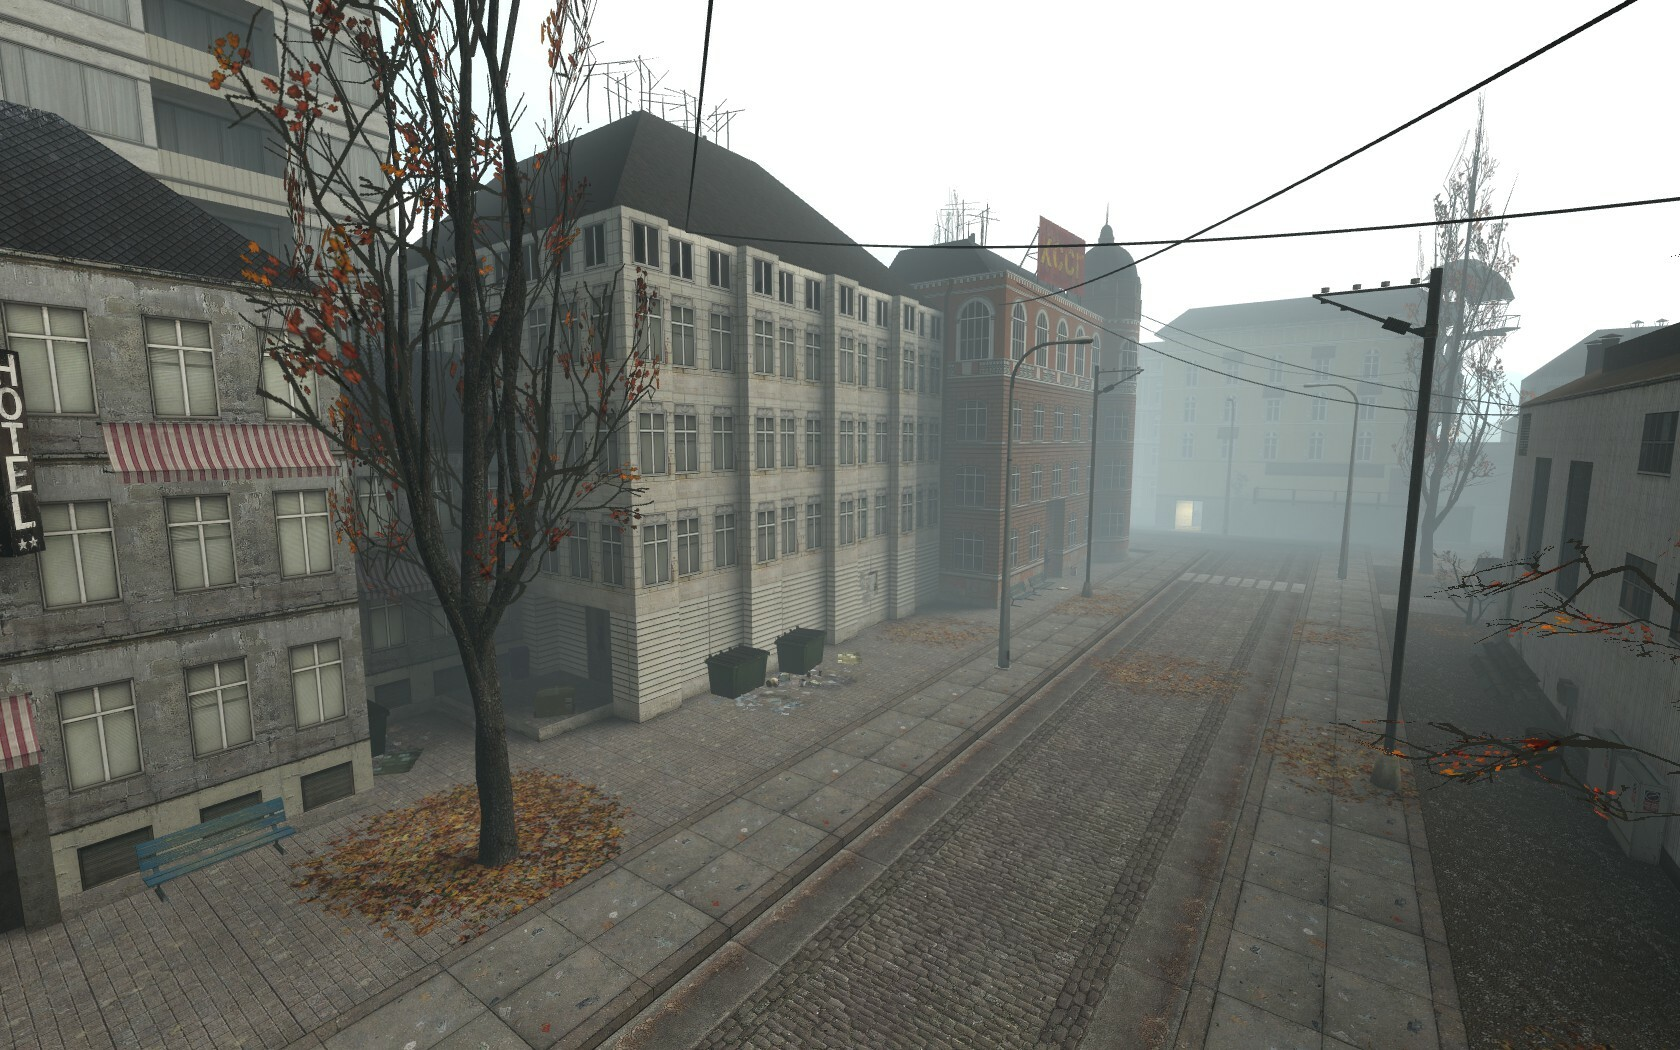 Again, the fog is used to make the environment much more interesting and create an atmosphere of mystery.